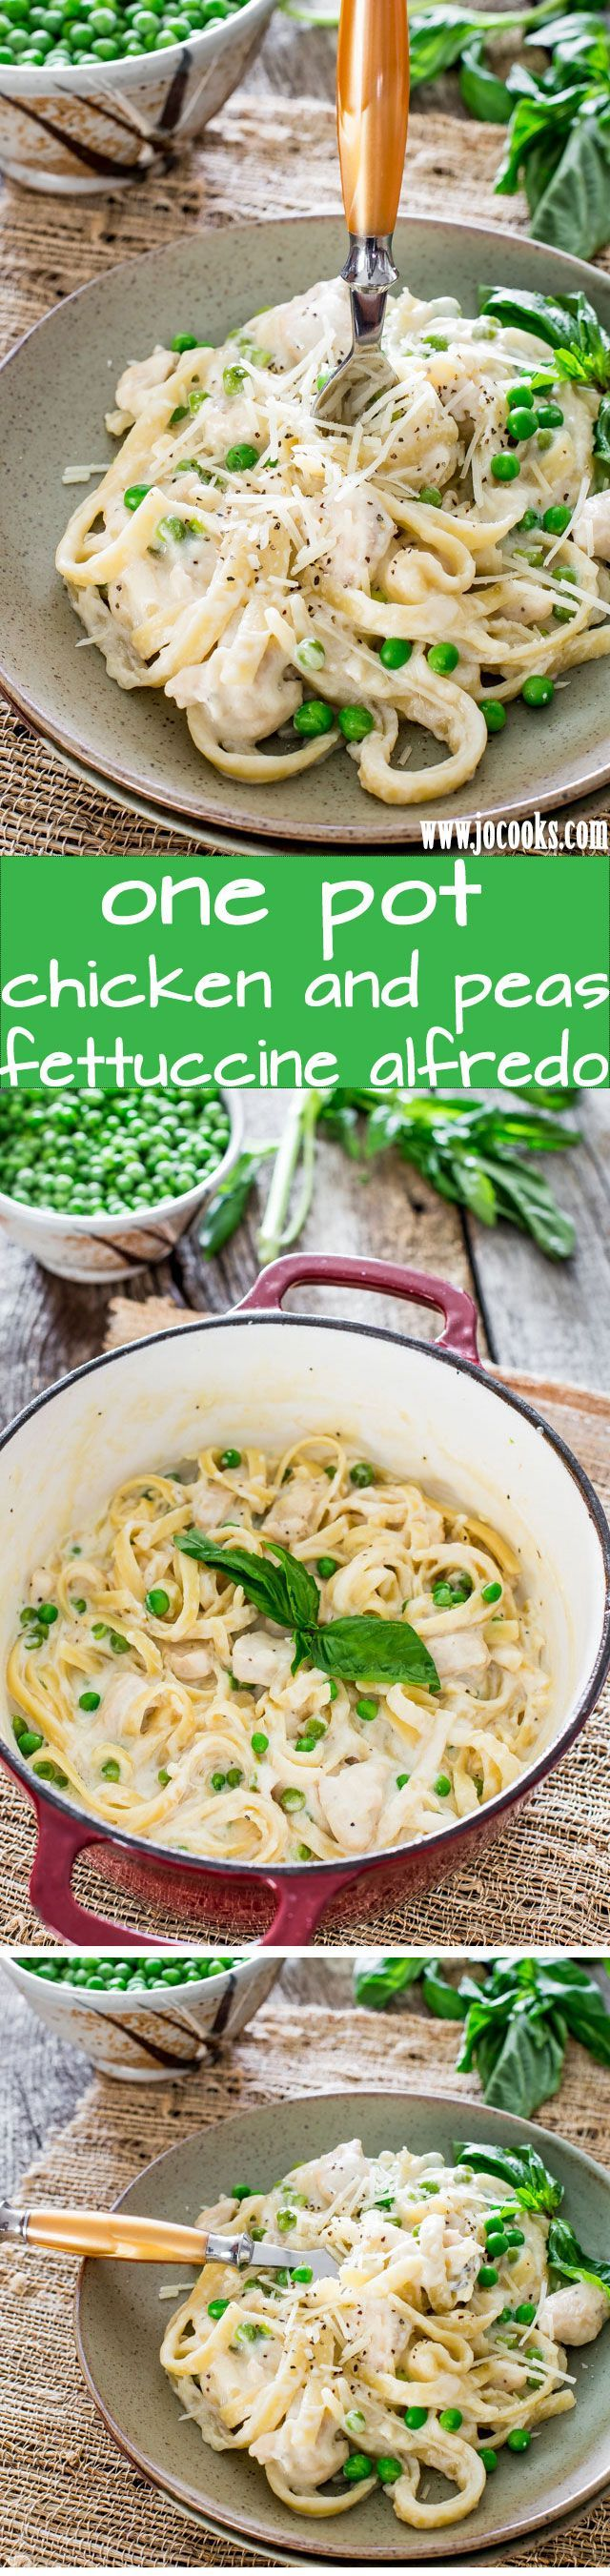 One Pot Chicken and Peas Fettuccine Alfredo - dinner in 30 minutes, it's creamy, it's rich and so cheesy. The beauty of this is that you cook it all in one pot, including the fettuccine.